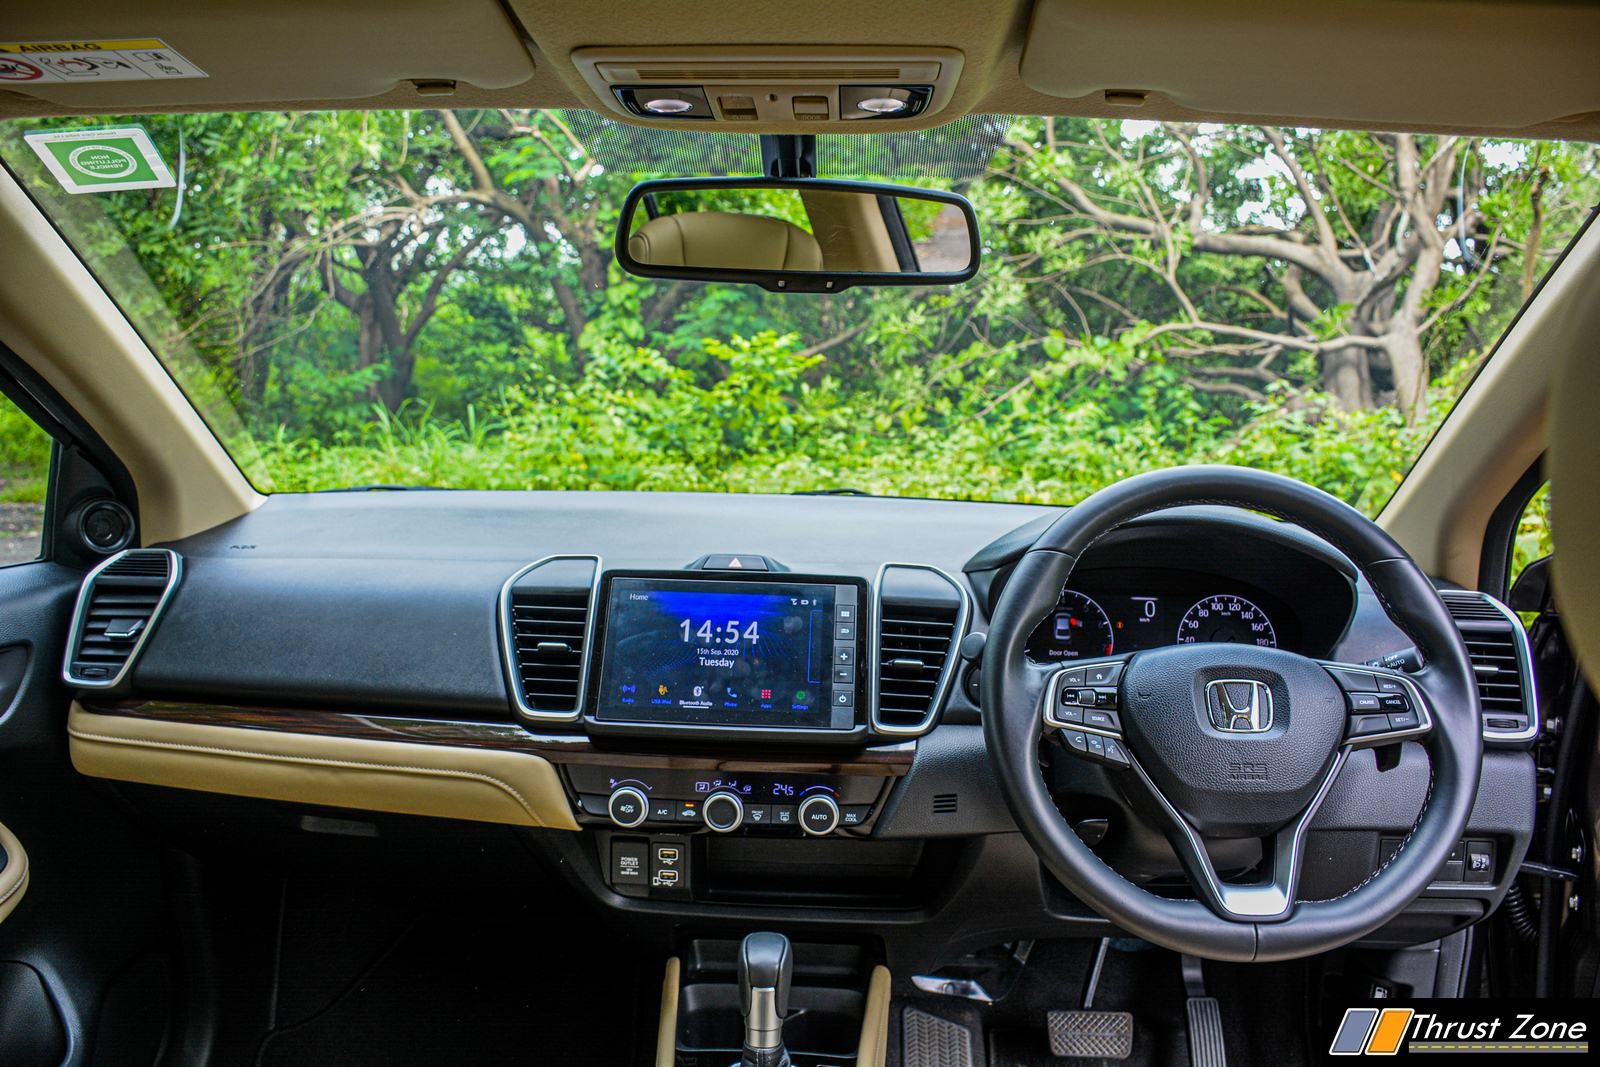 2020-Honda-City-Road-Test-Review-7